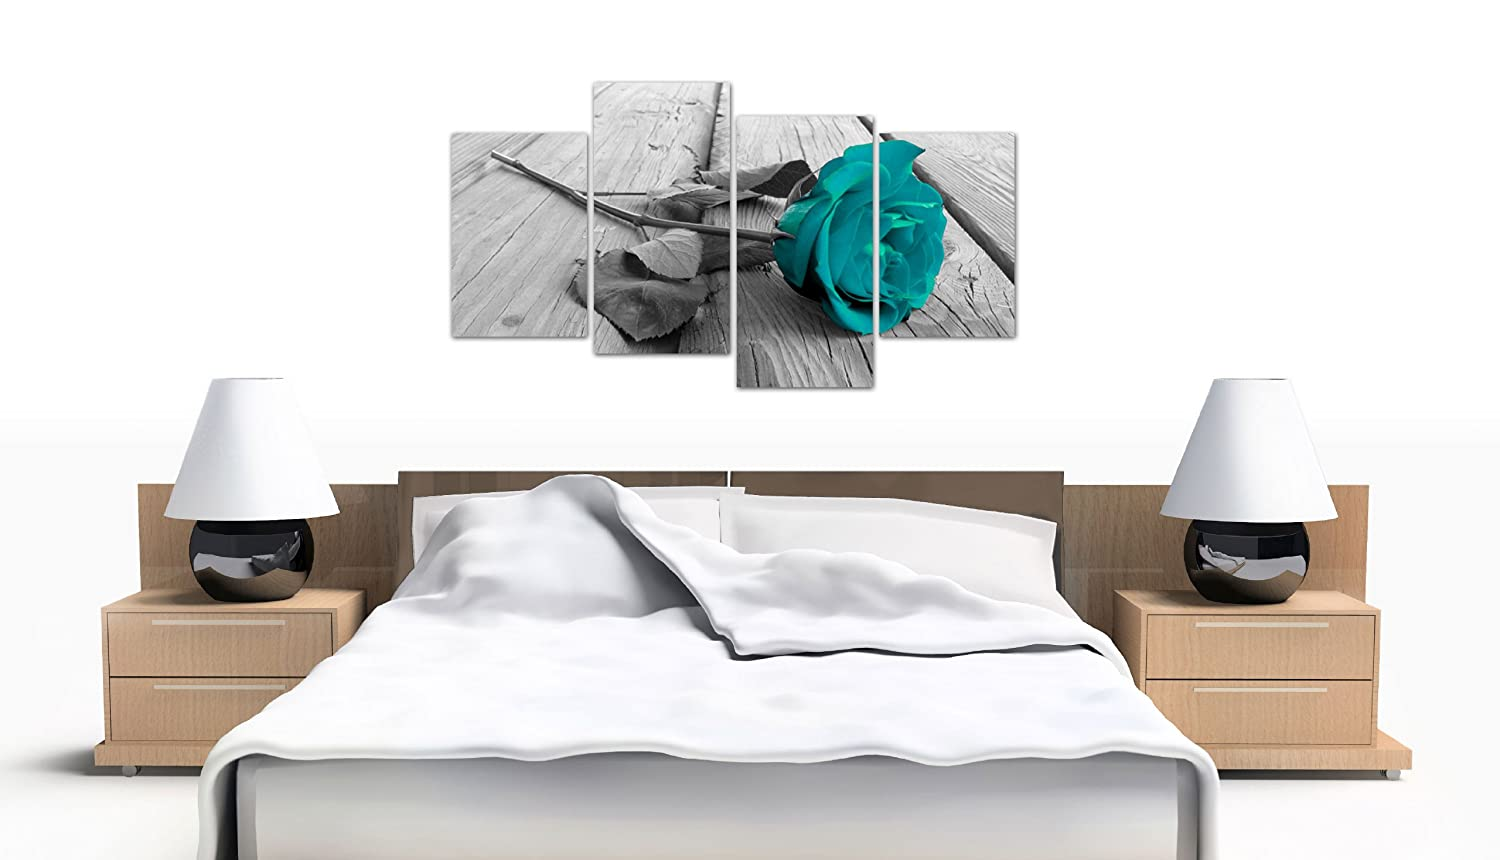 Black White Floral Flower Teal Canvas Wall Art XL 130cm Pictures 4037 Wallfillers